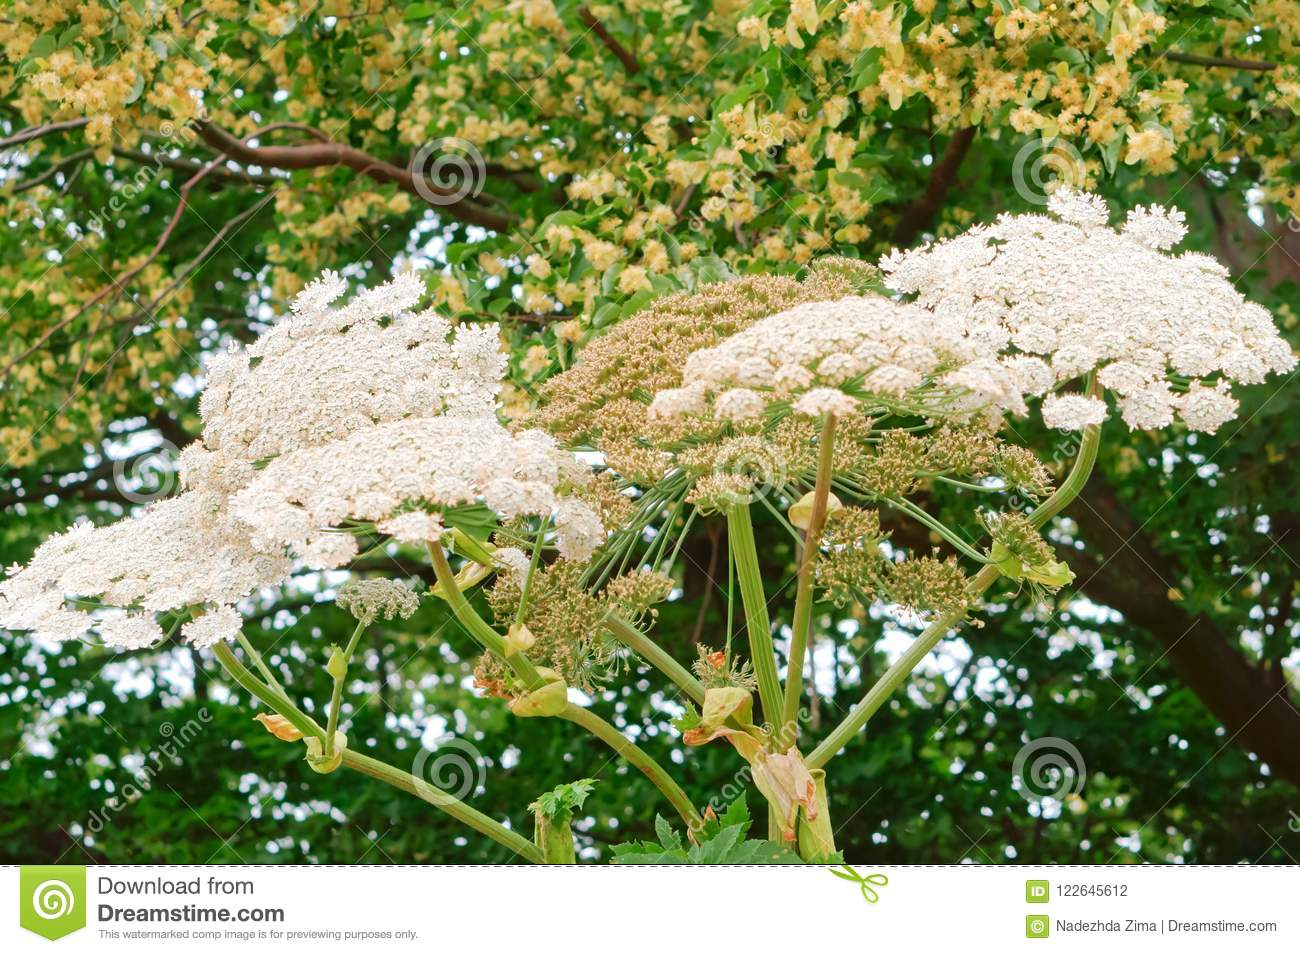 Hogweed a poisonous plant threat inflorescence of white flowers of download hogweed a poisonous plant threat inflorescence of white flowers of the cow parsnip mightylinksfo